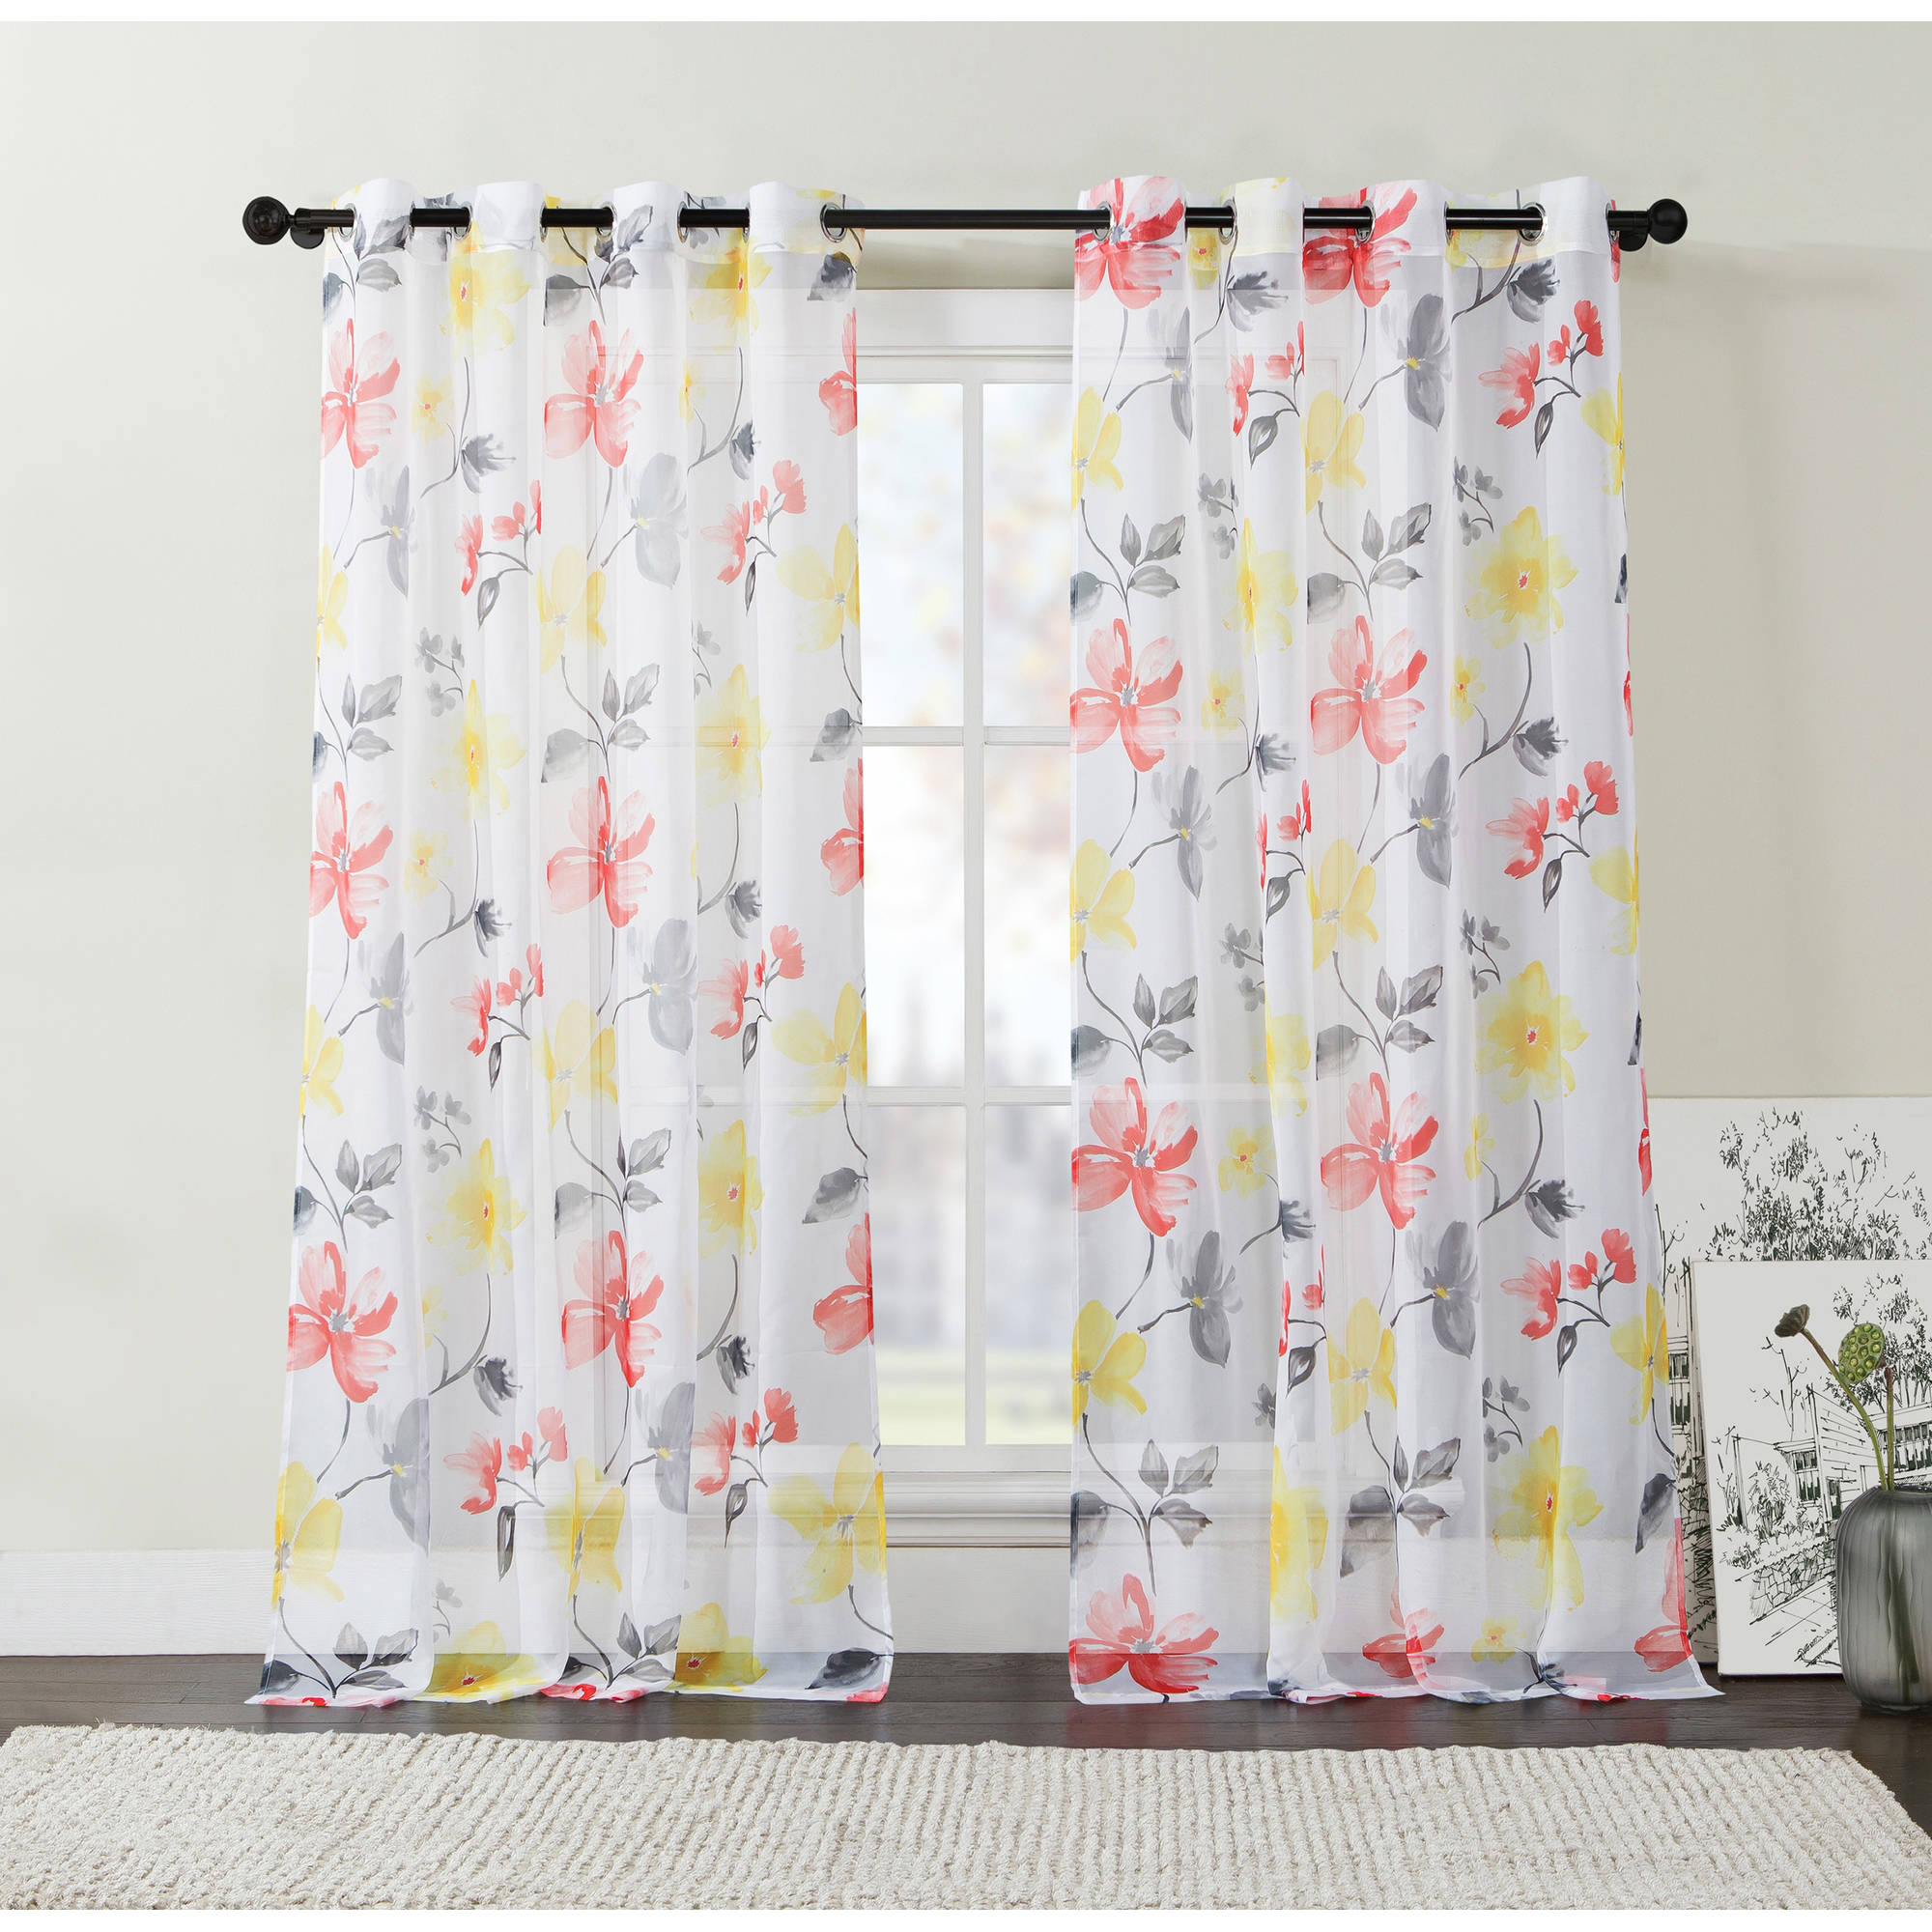 ***DISCONTINUED*** VCNY Home Floral Serena Sheer Grommet Top Window Curtains, Set of 2, Multiple Sizes Available